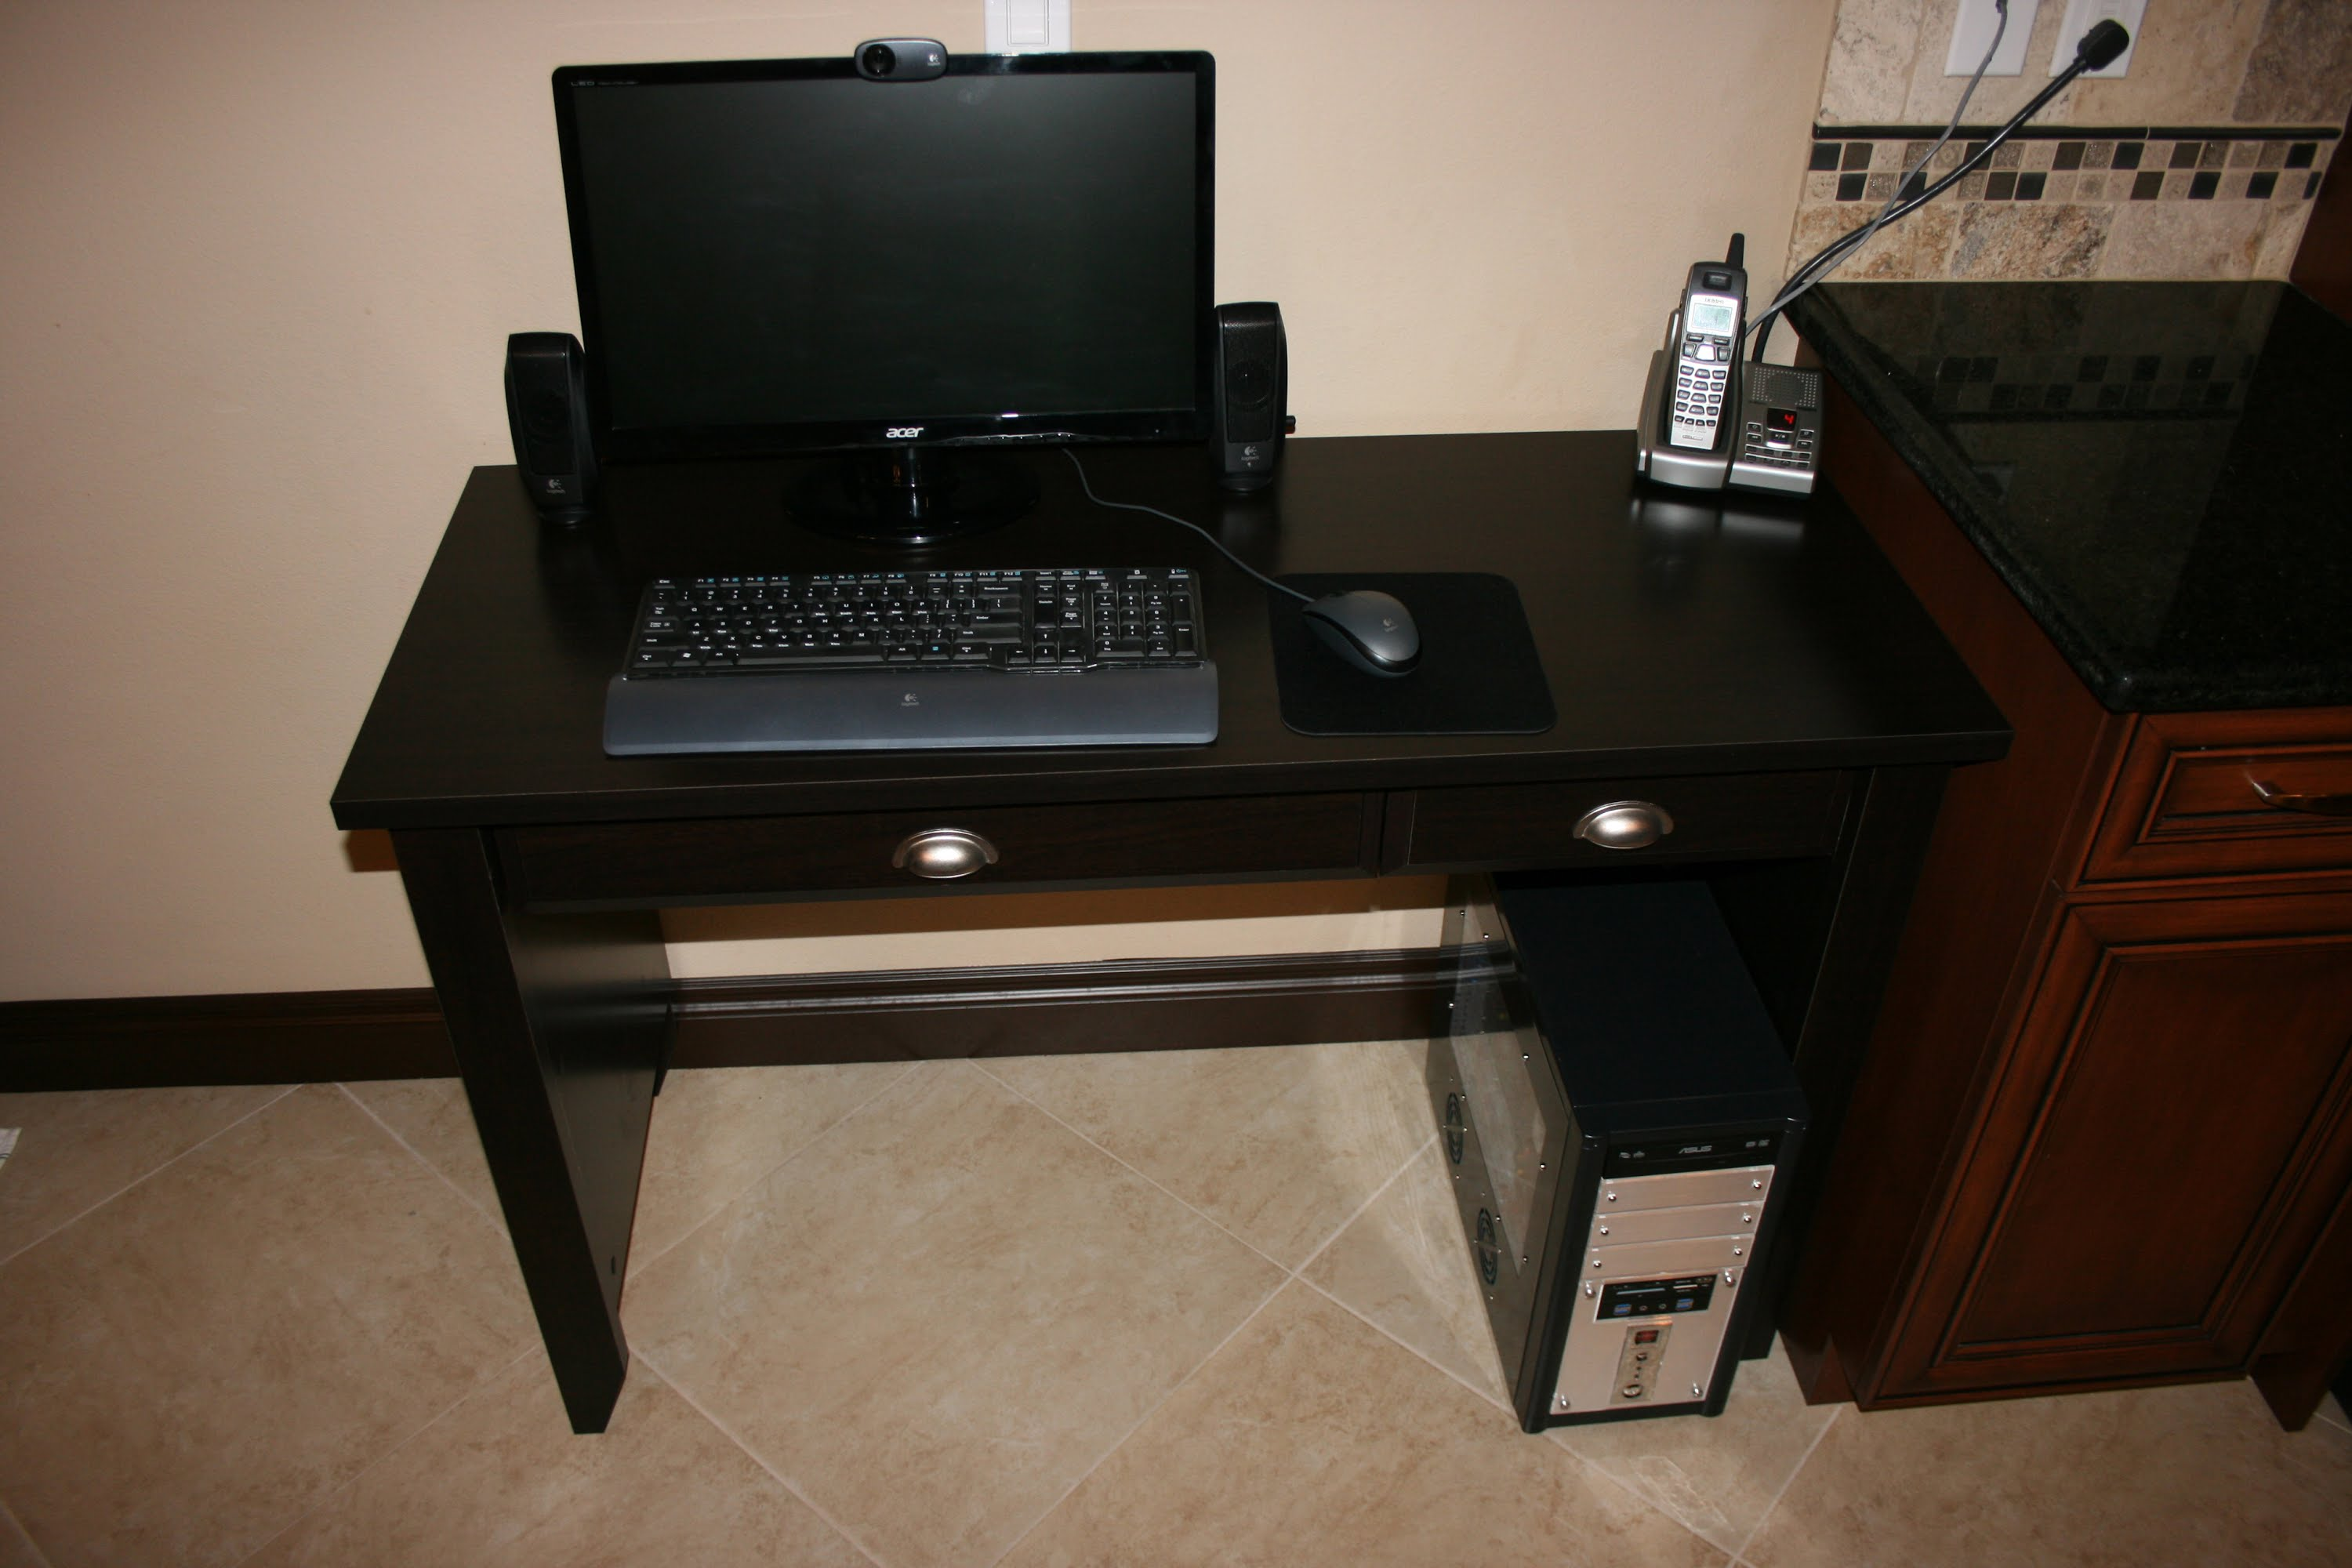 Sauder Computer Desks | Desks Amazon | Computer Desk with Hutch and Drawers